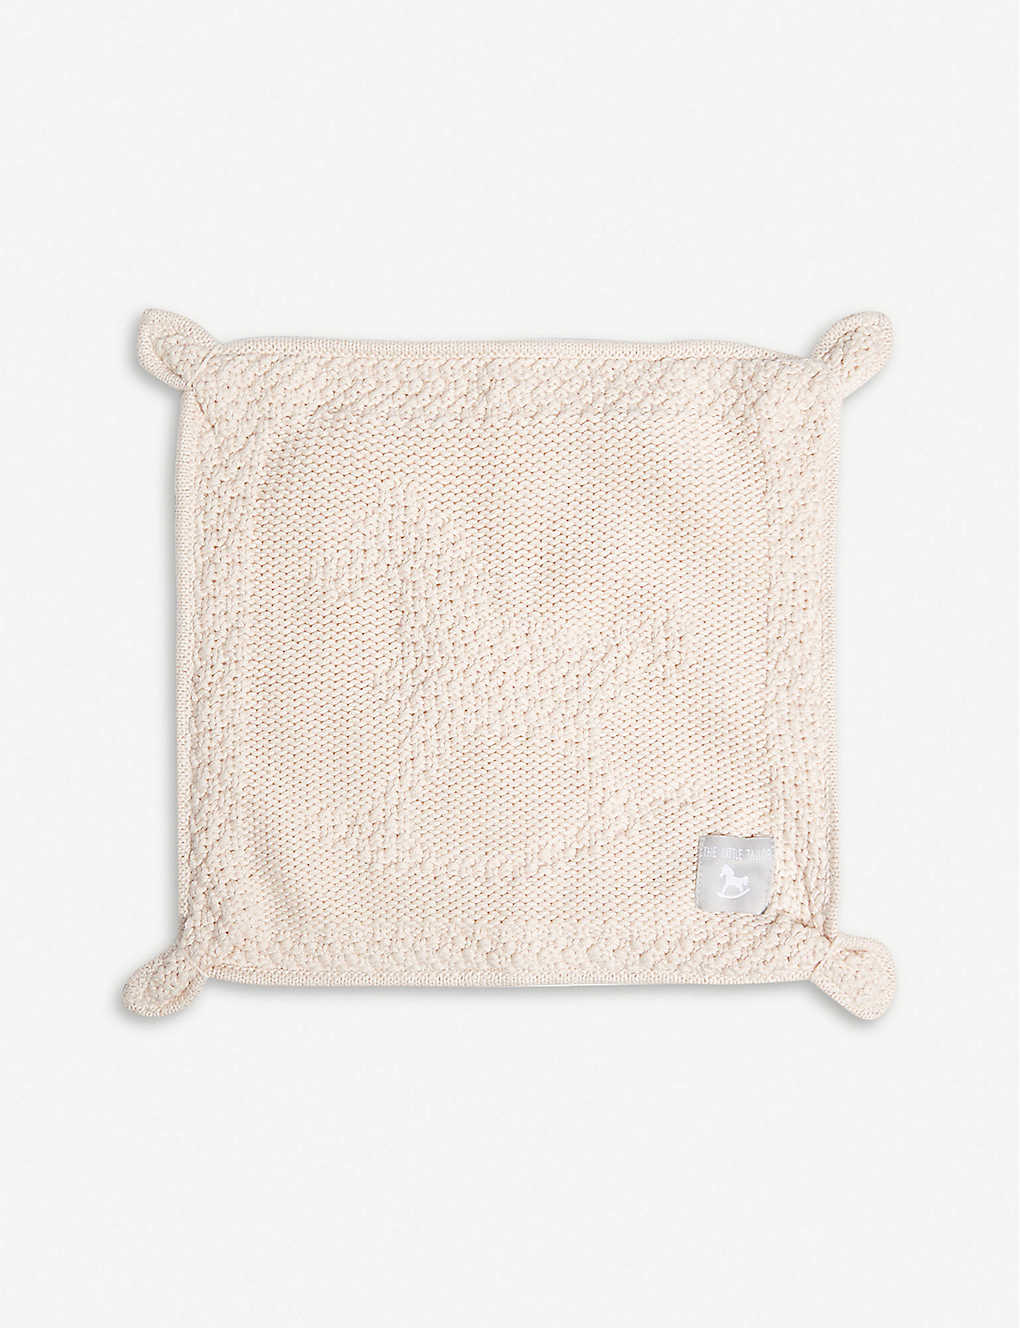 THE LITTLE TAILOR: Knitted cotton blankie